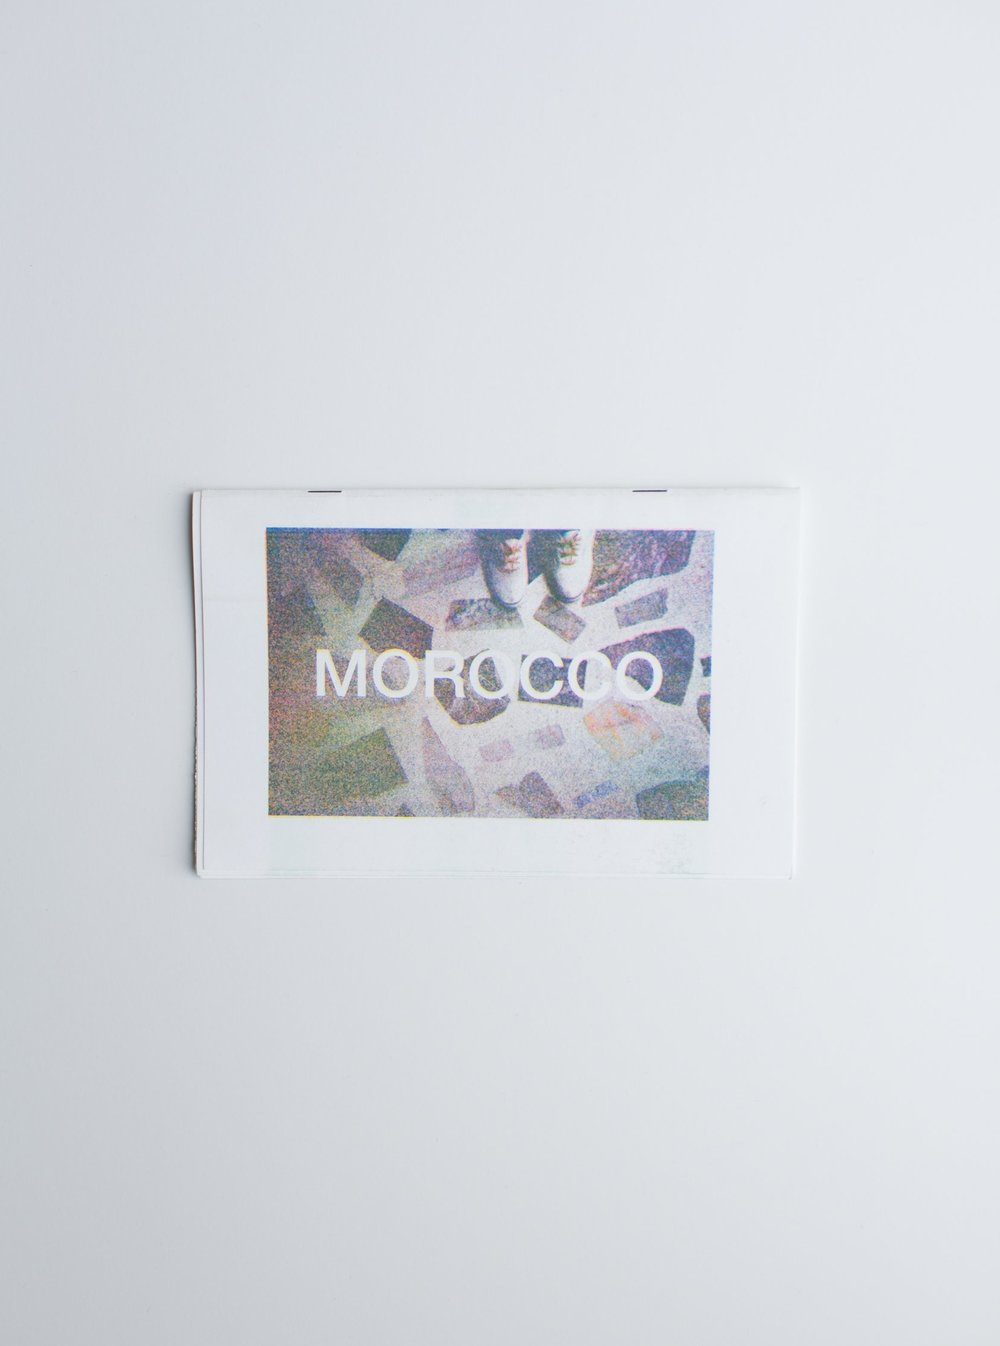 "Morocco Photo Zine Printed on Risograph 8.5"" x 5.5"", 10 pages"